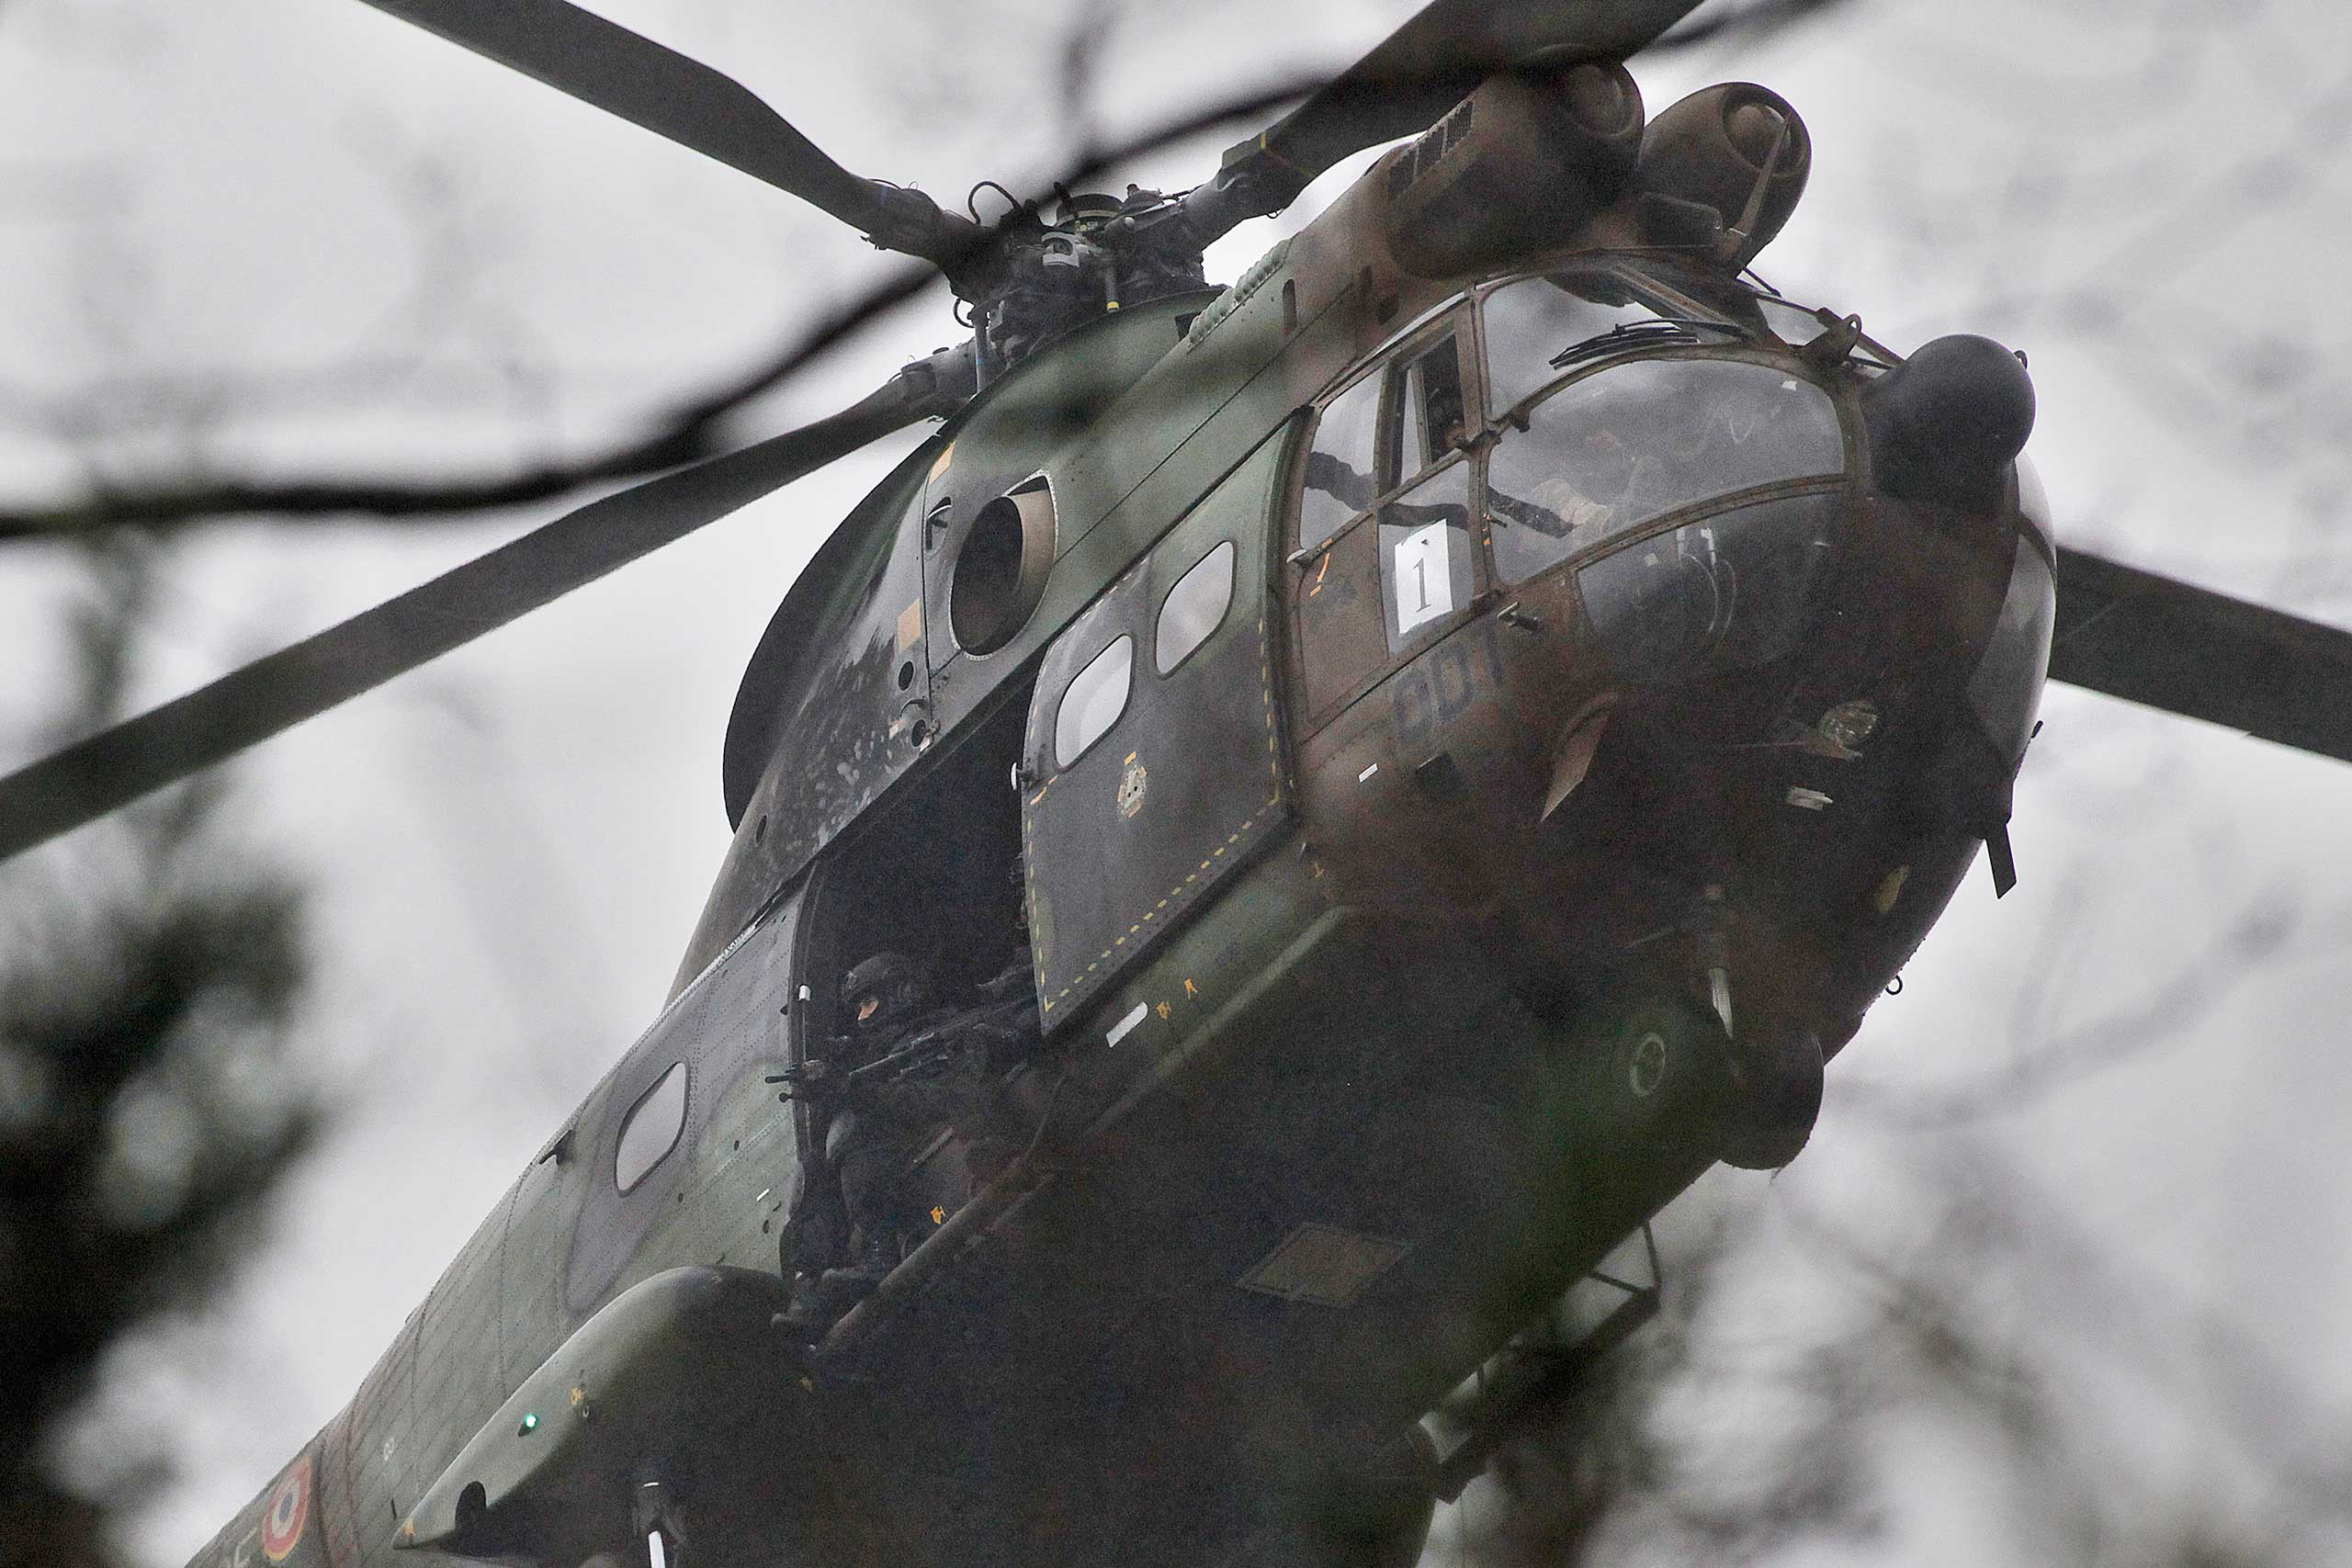 Armed security forces fly overhead in a military helicopter  in Dammartin-en-Goele, northeast of Paris,  Jan. 9, 2015.